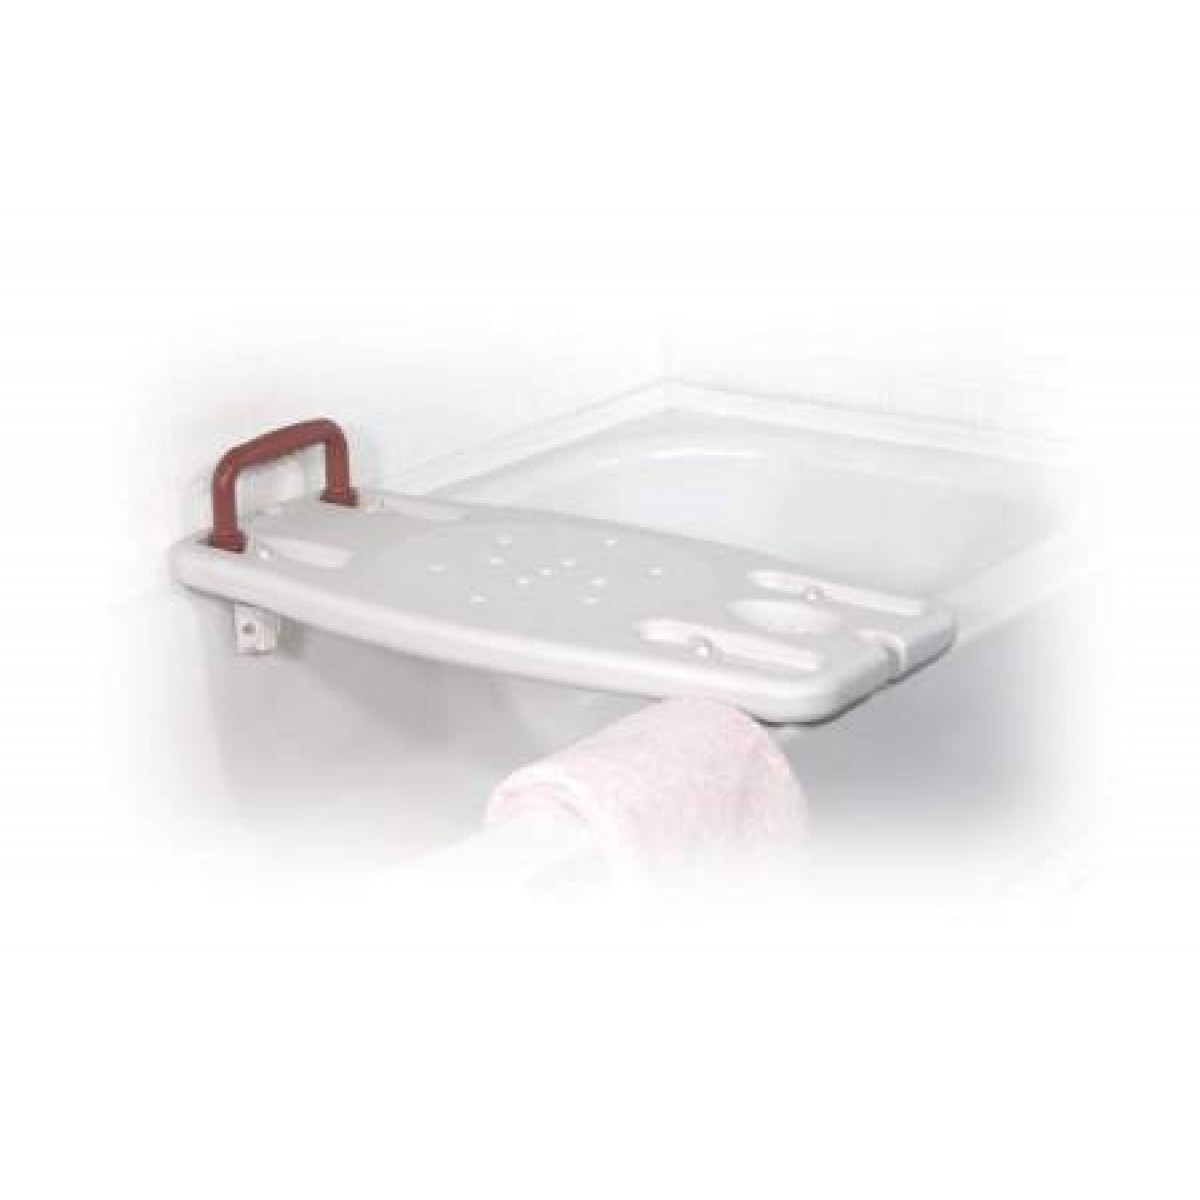 Portable Shower Bench By Drive Medical 12023